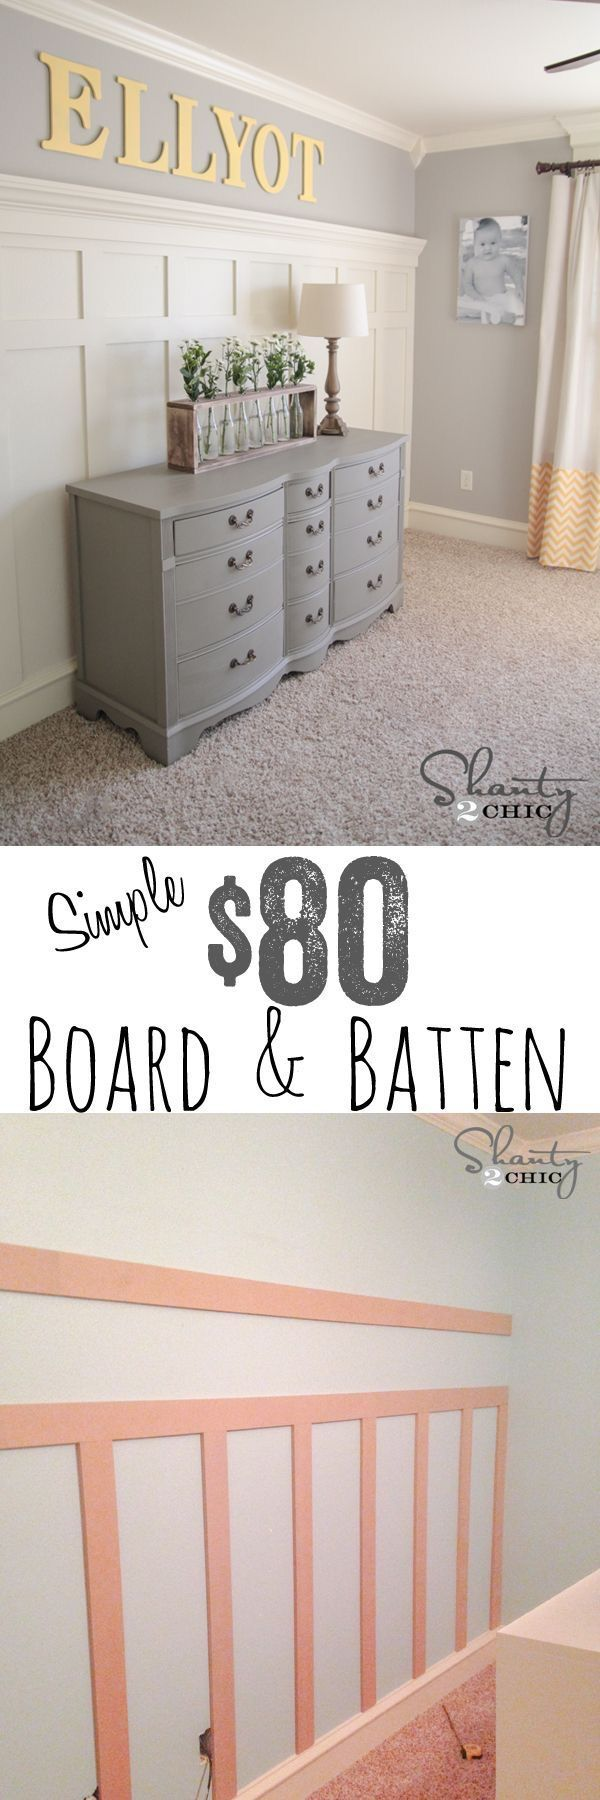 ...used just a couple boards and a piece of trim, and the rest of the wall is made with boards ripped from a full sheet of MDF I had Home Depot cut down for us. #KidsBedroomFurniture